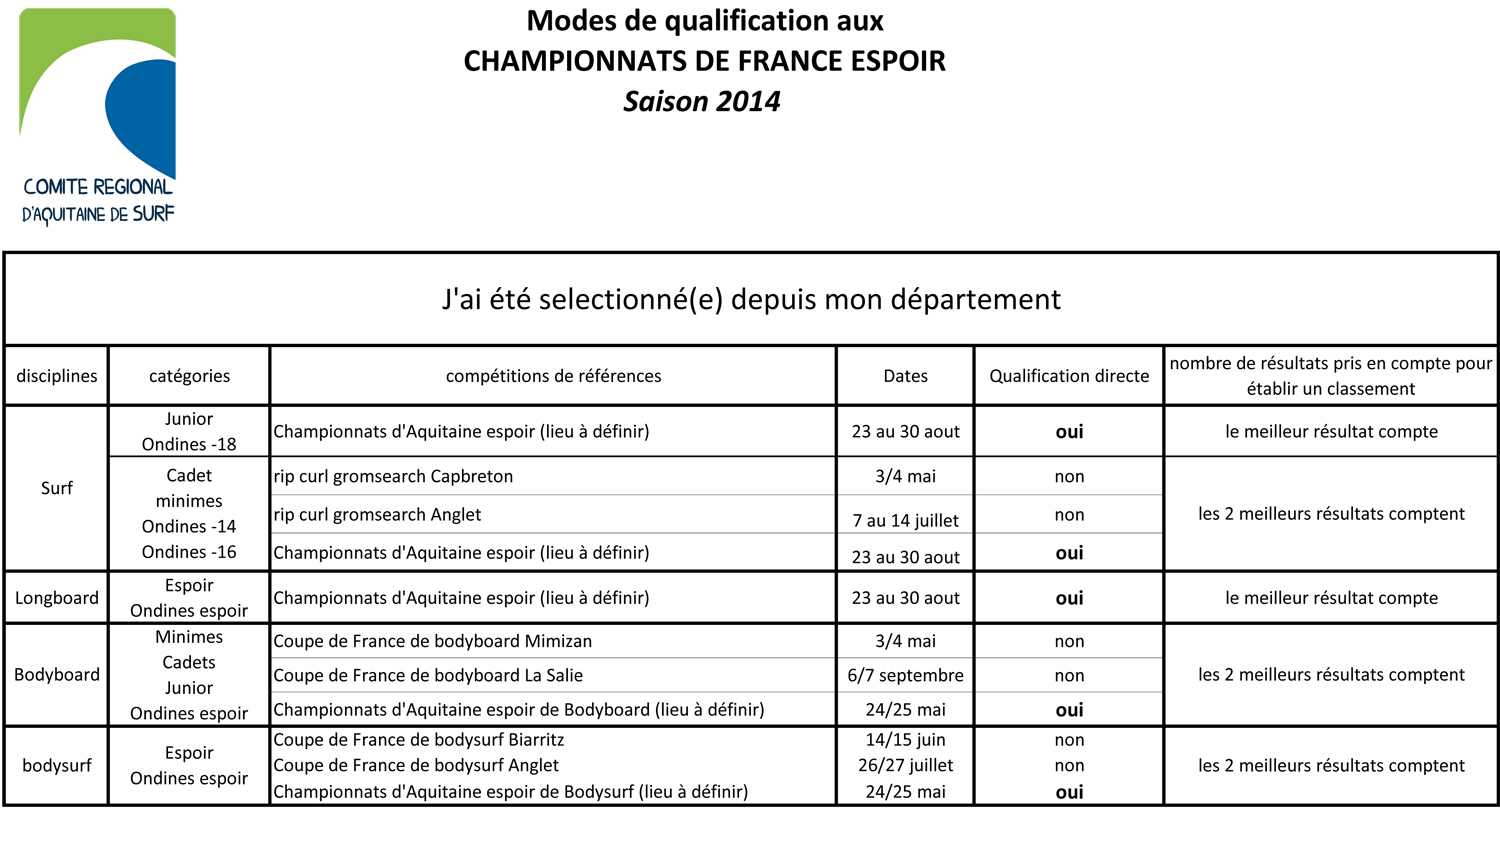 mode_qualification_auxFrance2014